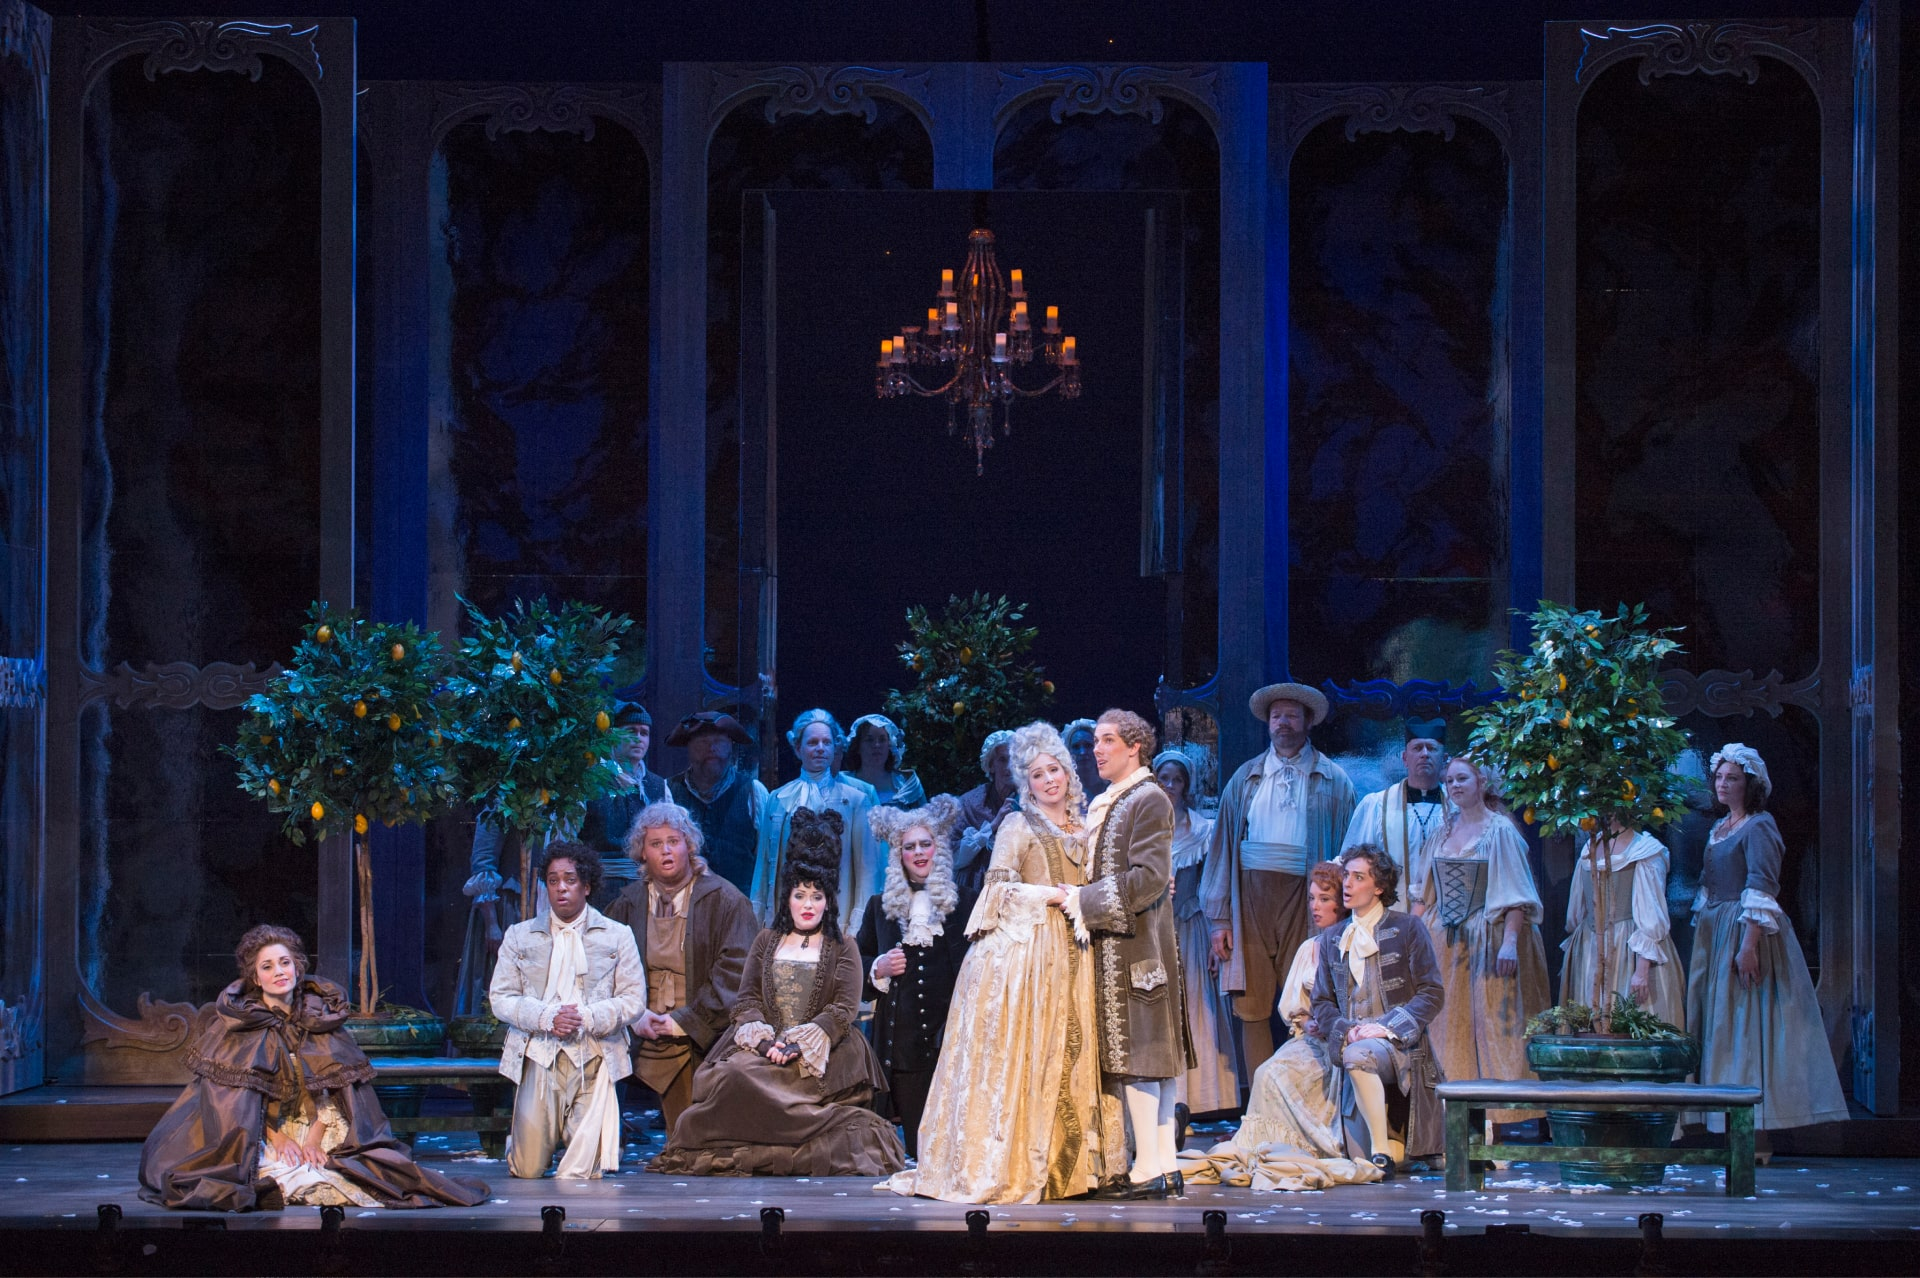 Opera players in elaborate 18th century attire sing under moonlight in front of topiary, chandelier, and towering revolving doors.